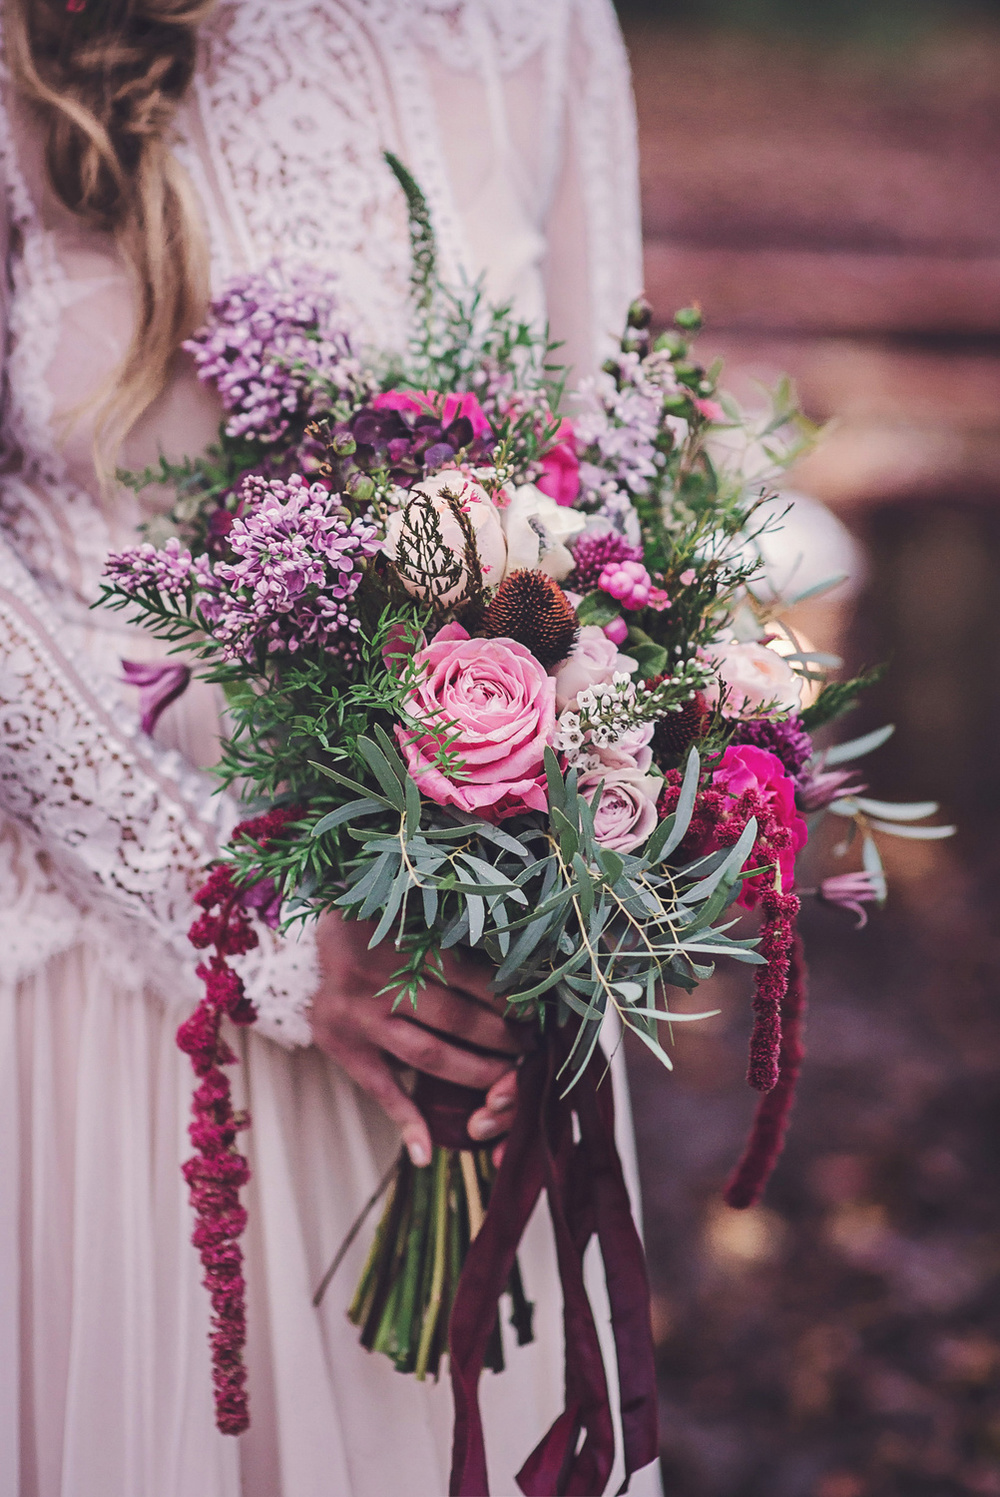 Boho style bridal bouquet in lilac, peach and claret